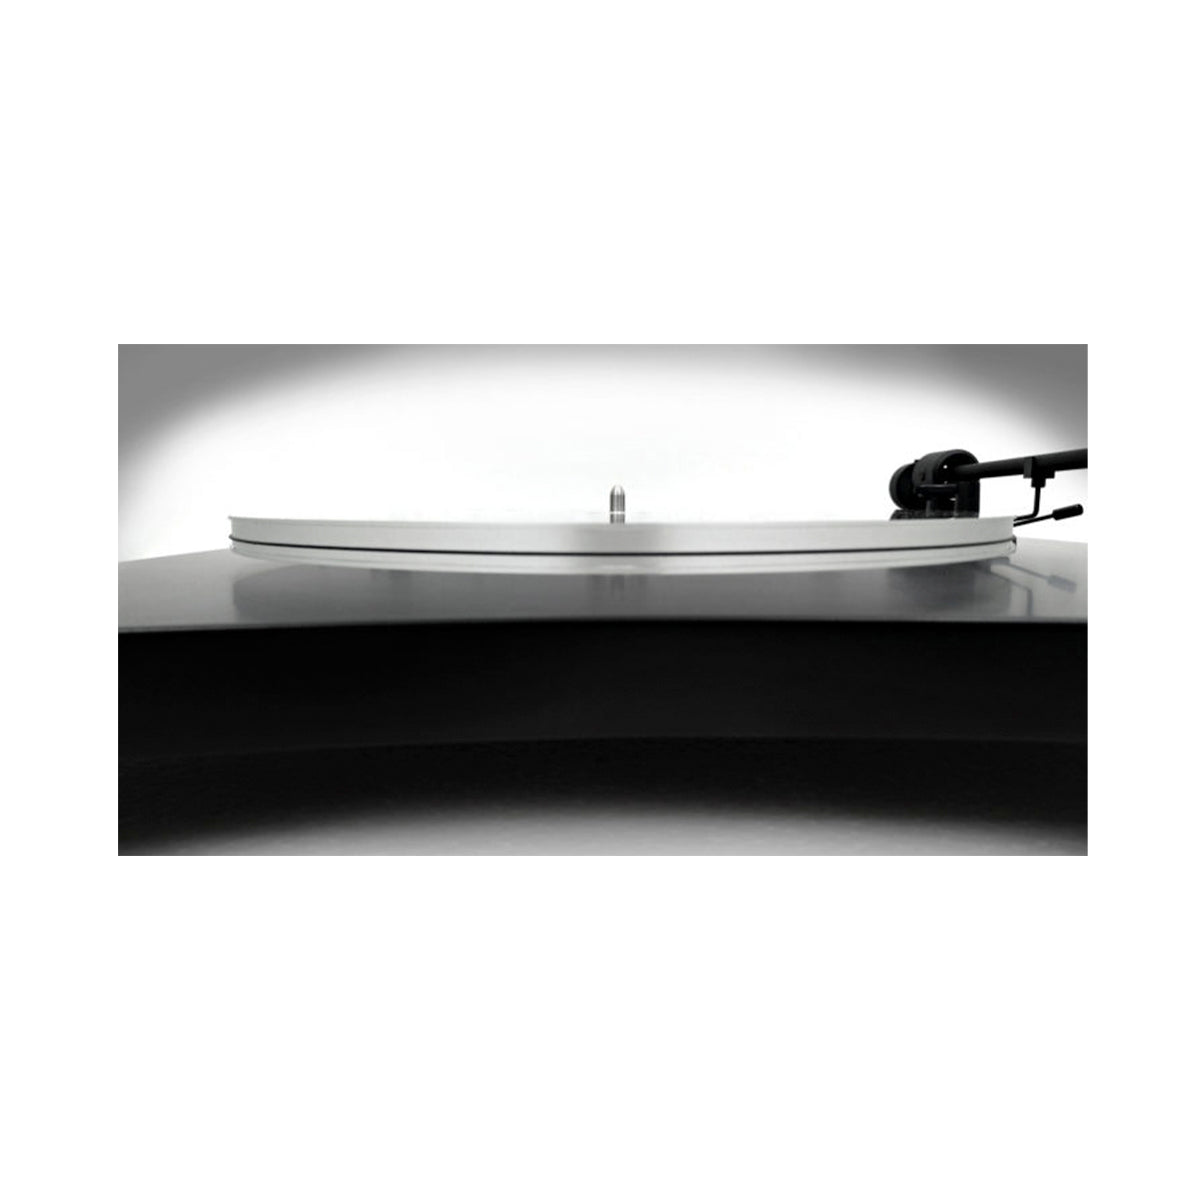 New Horizon GD 12 Platter For GD1 Turntable